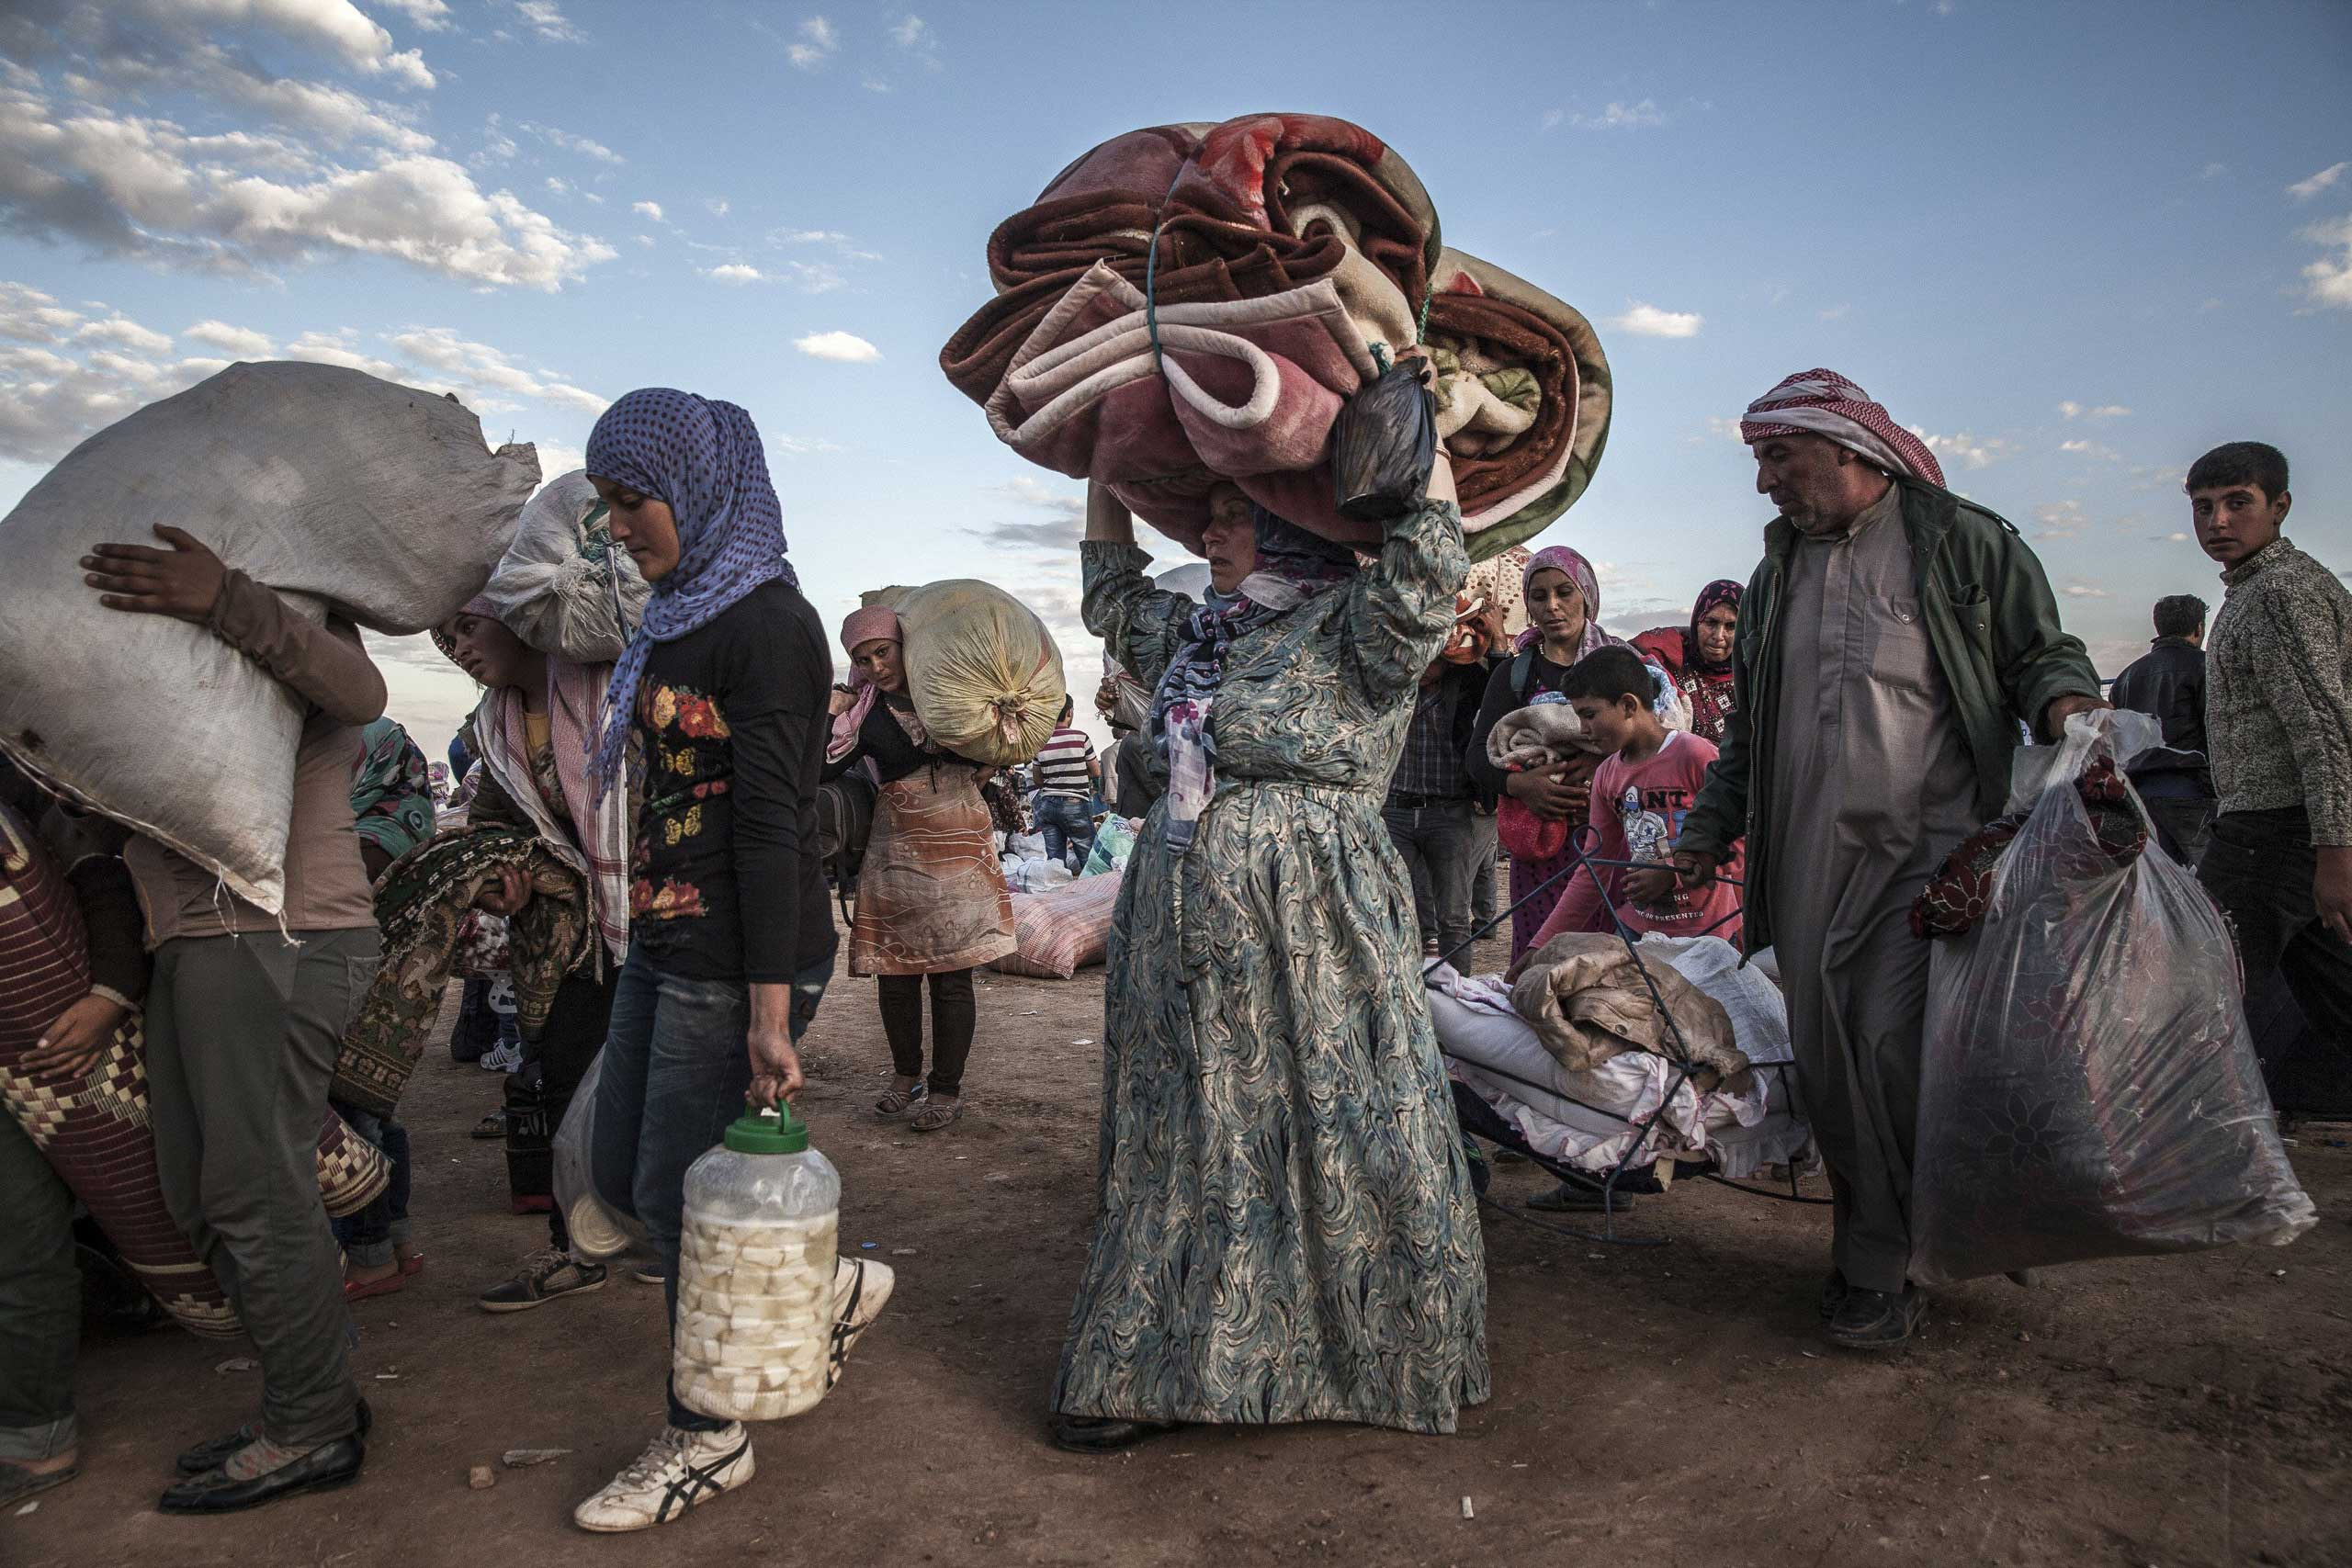 Sept. 29, 2014. Syrian Kurdish refugees at the Yumurtalik border crossing wait to be taken to shelters elsewhere in Turkey. Islamic State militants have been carrying out a weeklong assault on the Kurdish area across the border, where residents have pleaded for military aid.